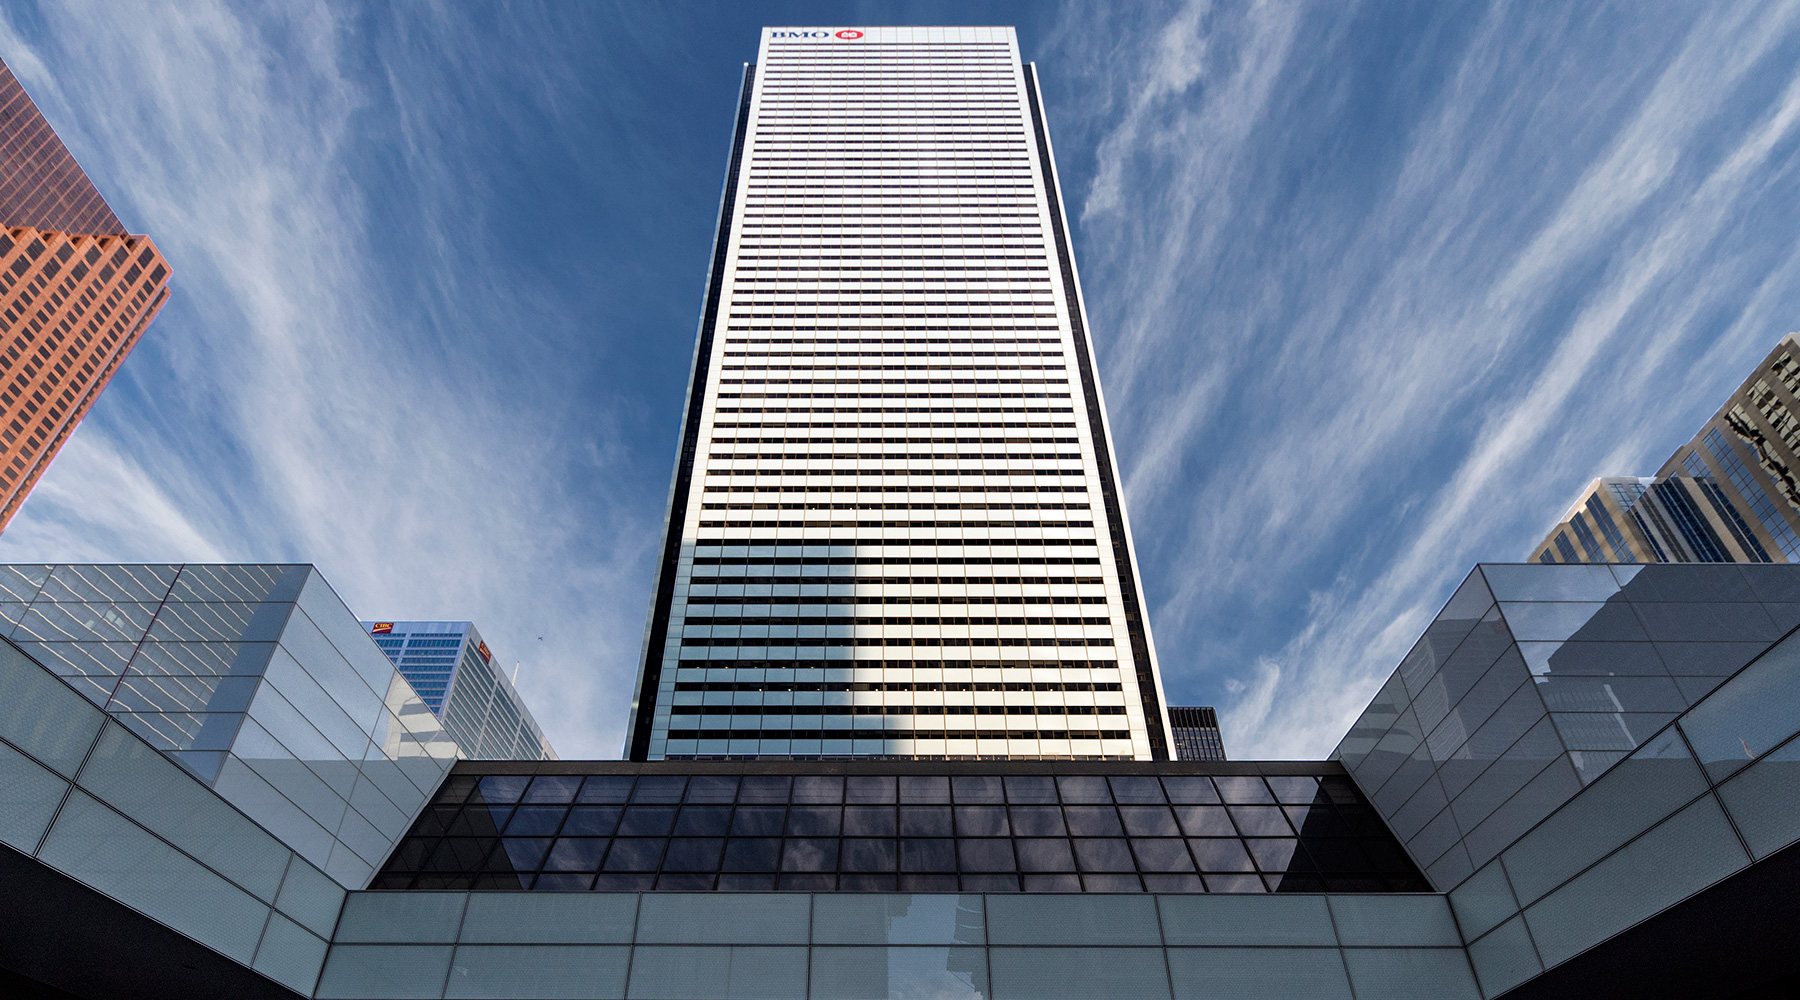 20150927. Toronto's First Canadian Place towers 298 metres over